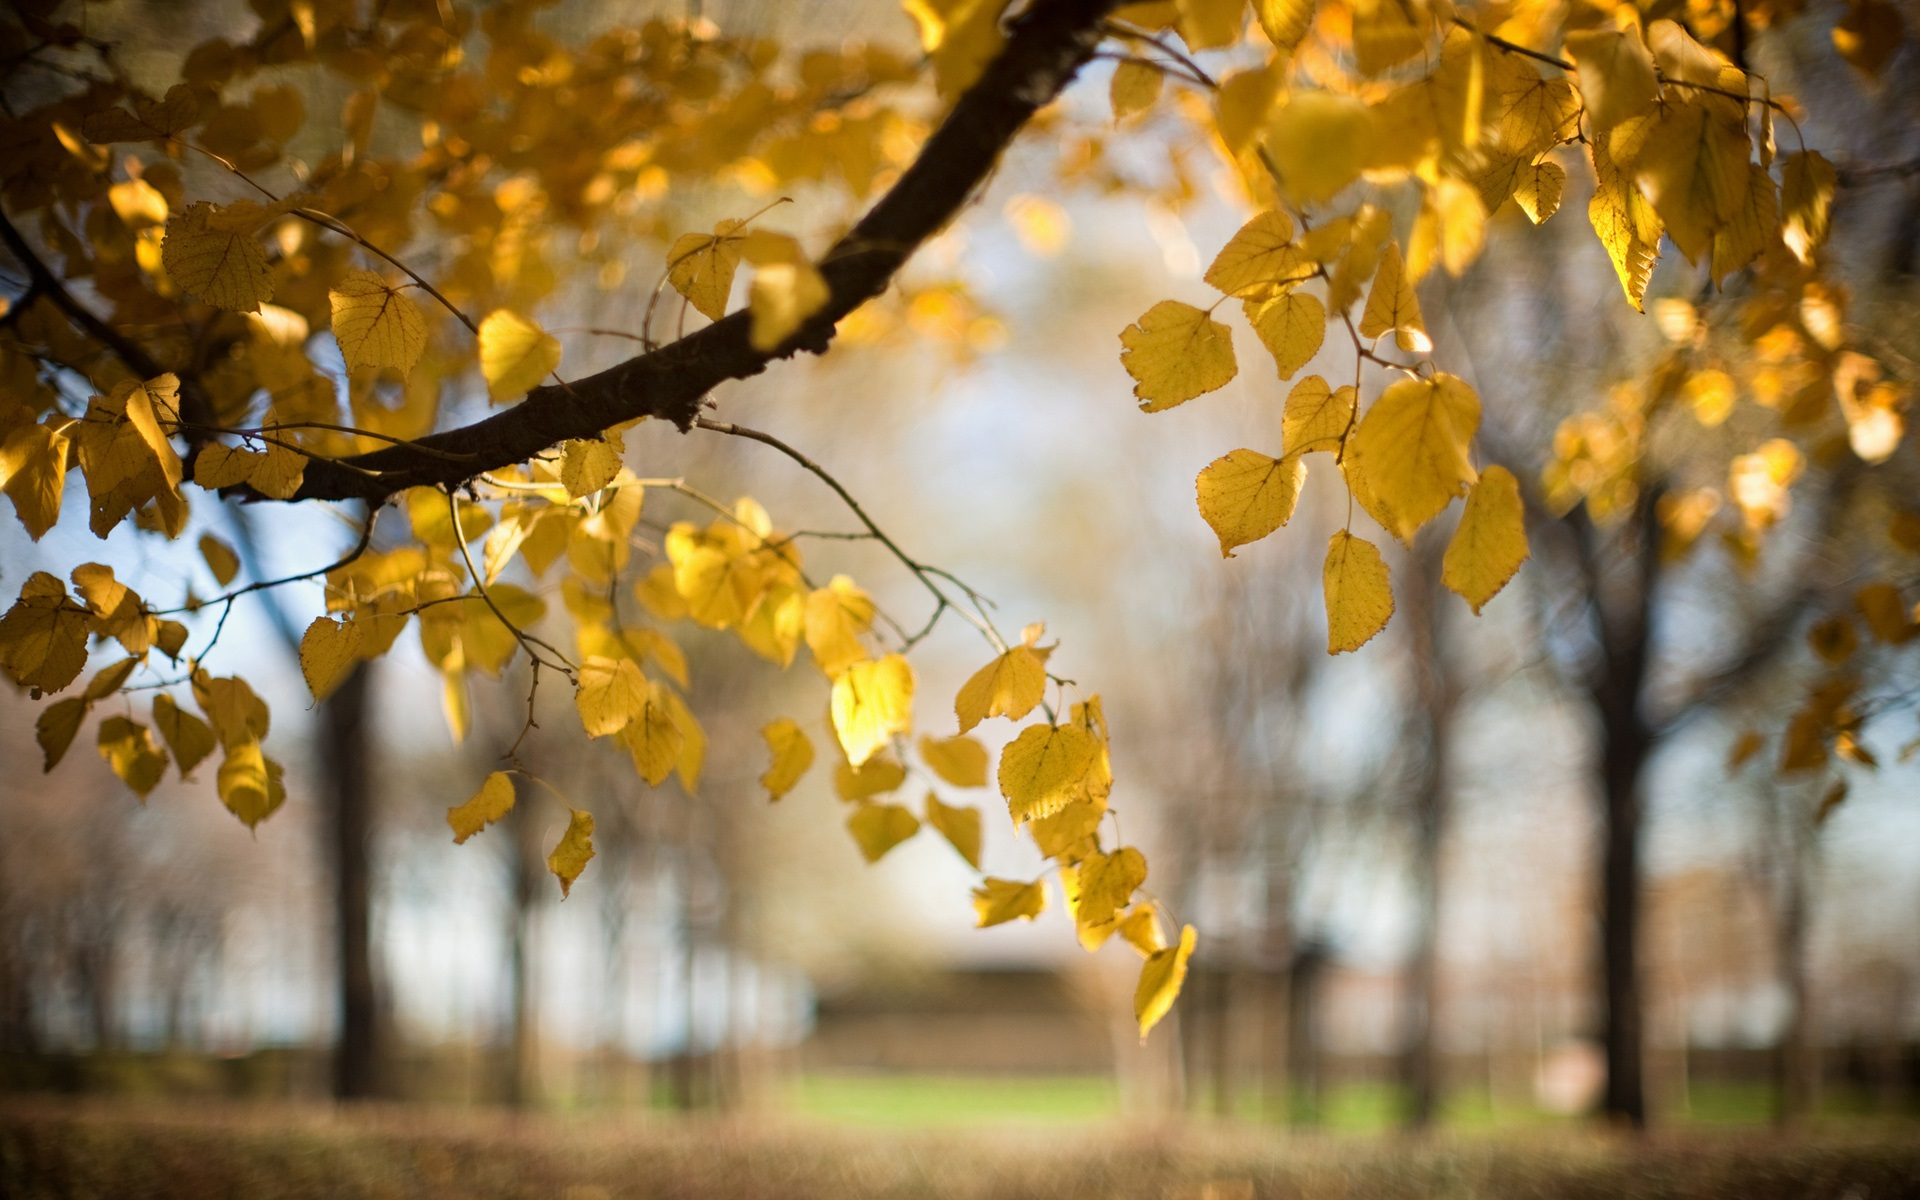 Wallpaper Trees, Yellow Leaves, Autumn, Blur, Nature